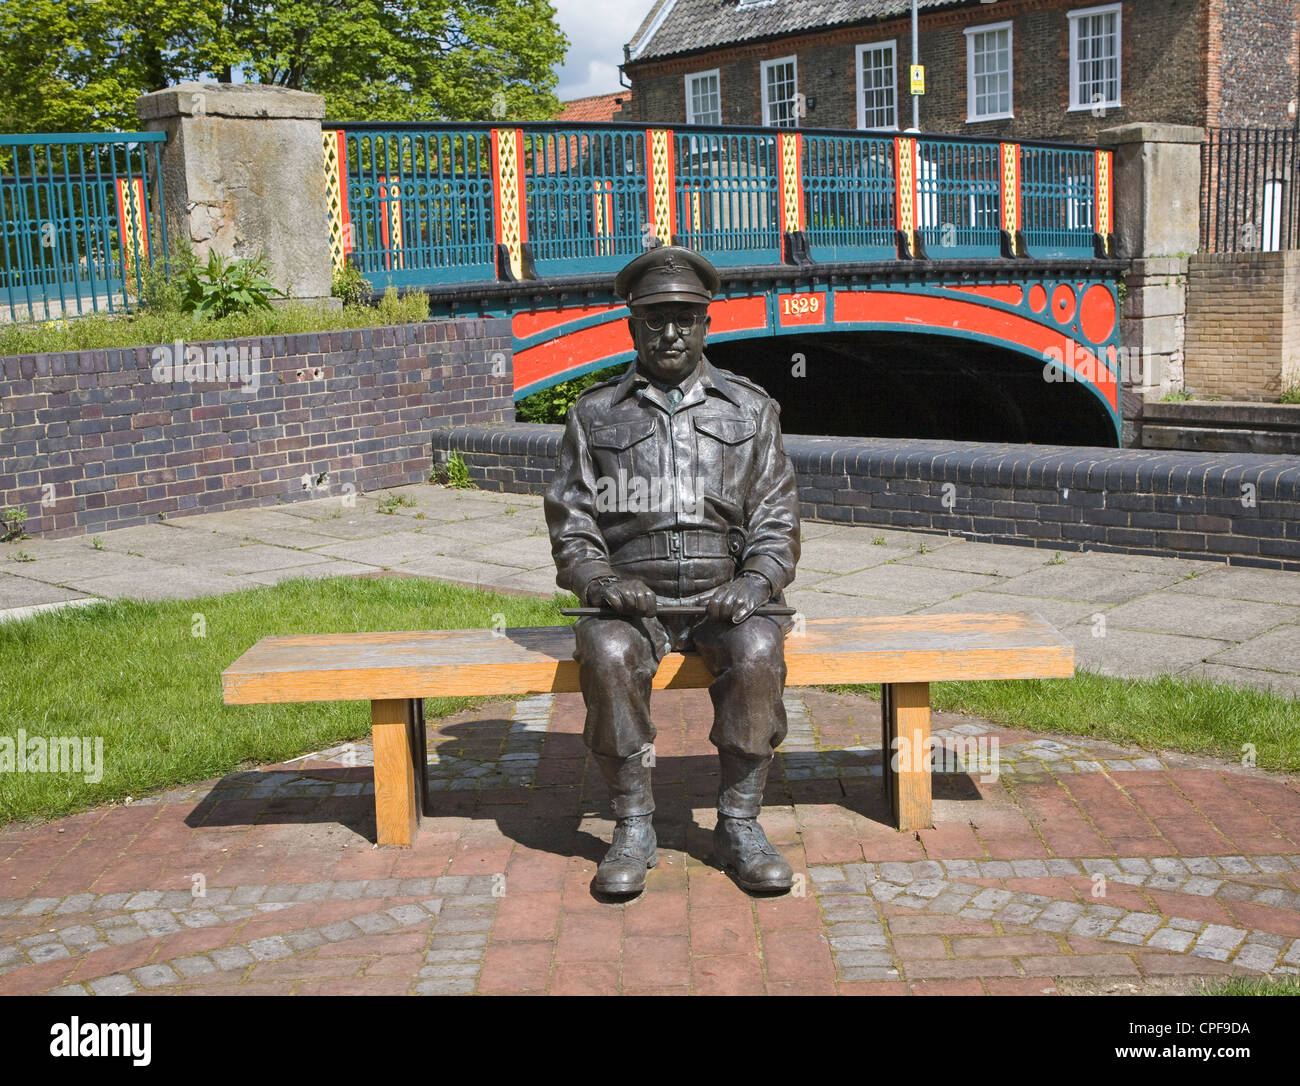 Statue of Captain Mainwaring, Arthur Lowe's   character Thetford Norfolk England - Stock Image